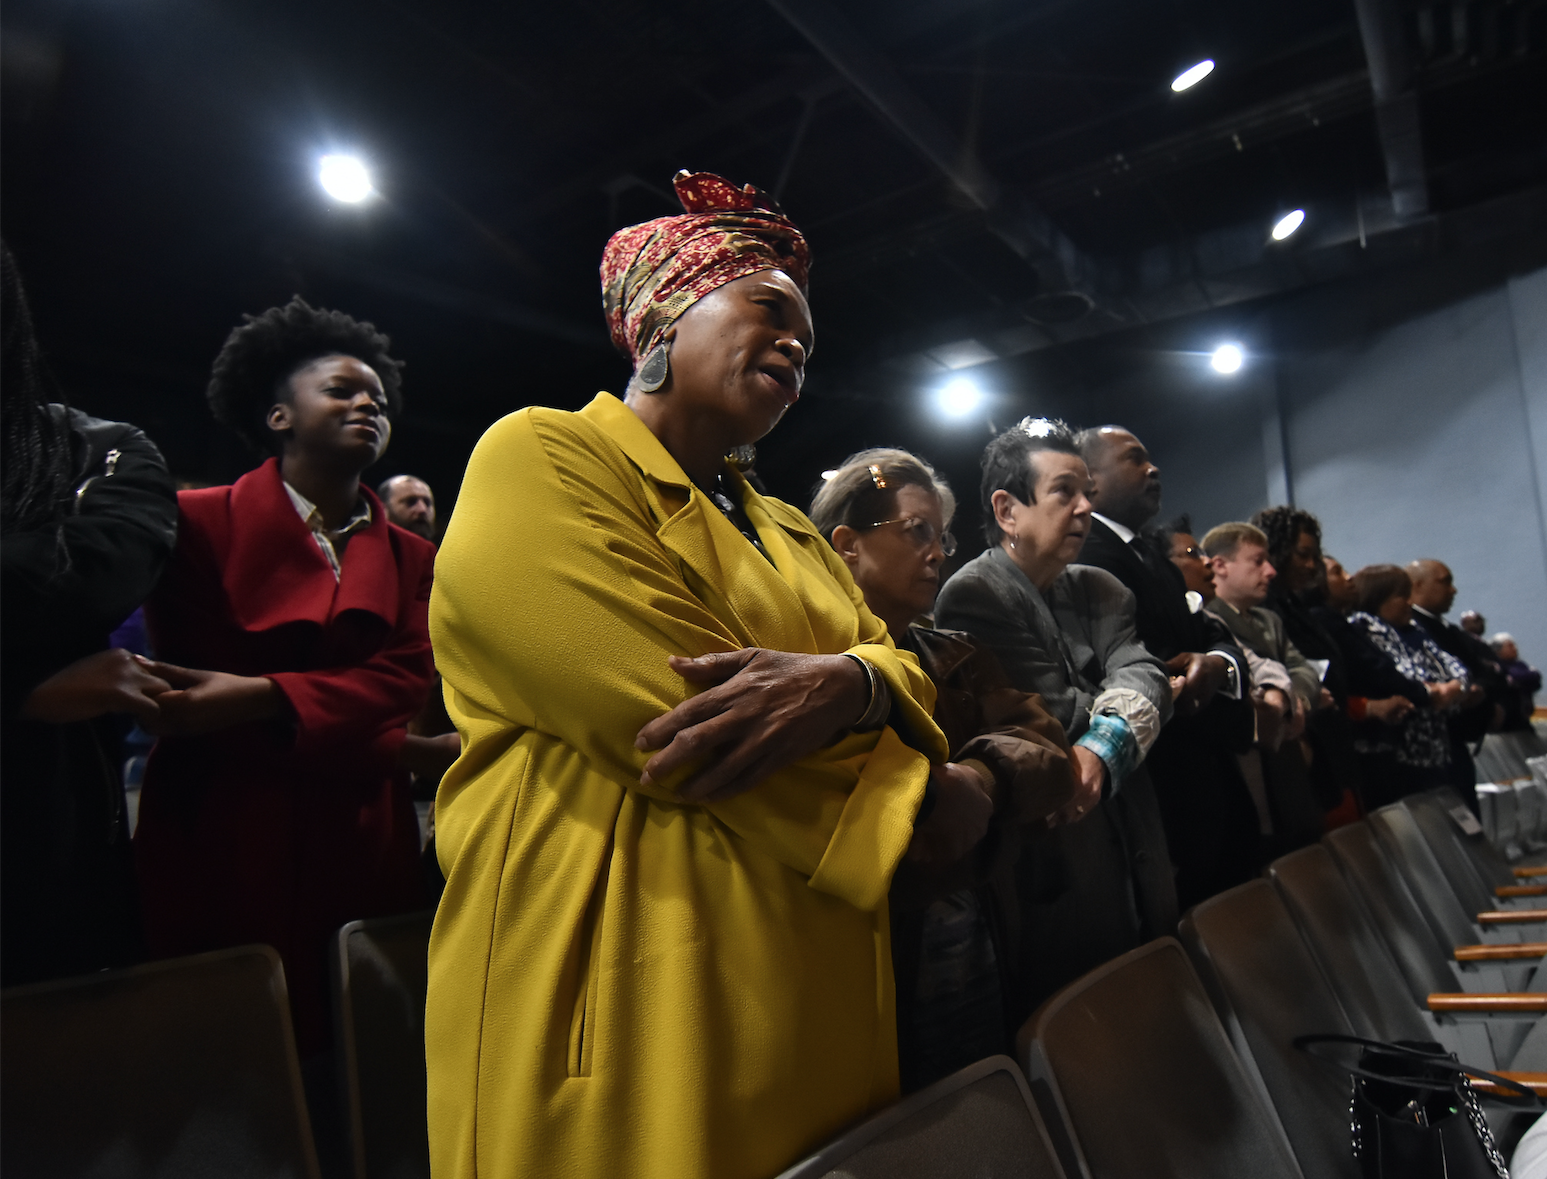 Attendees join hands and sing the civil rights anthem 'We Shall Overcome' in a show of solidarity with the movement that took place nearly 60 years ago. (Photo by William Kelly, III/JSU)